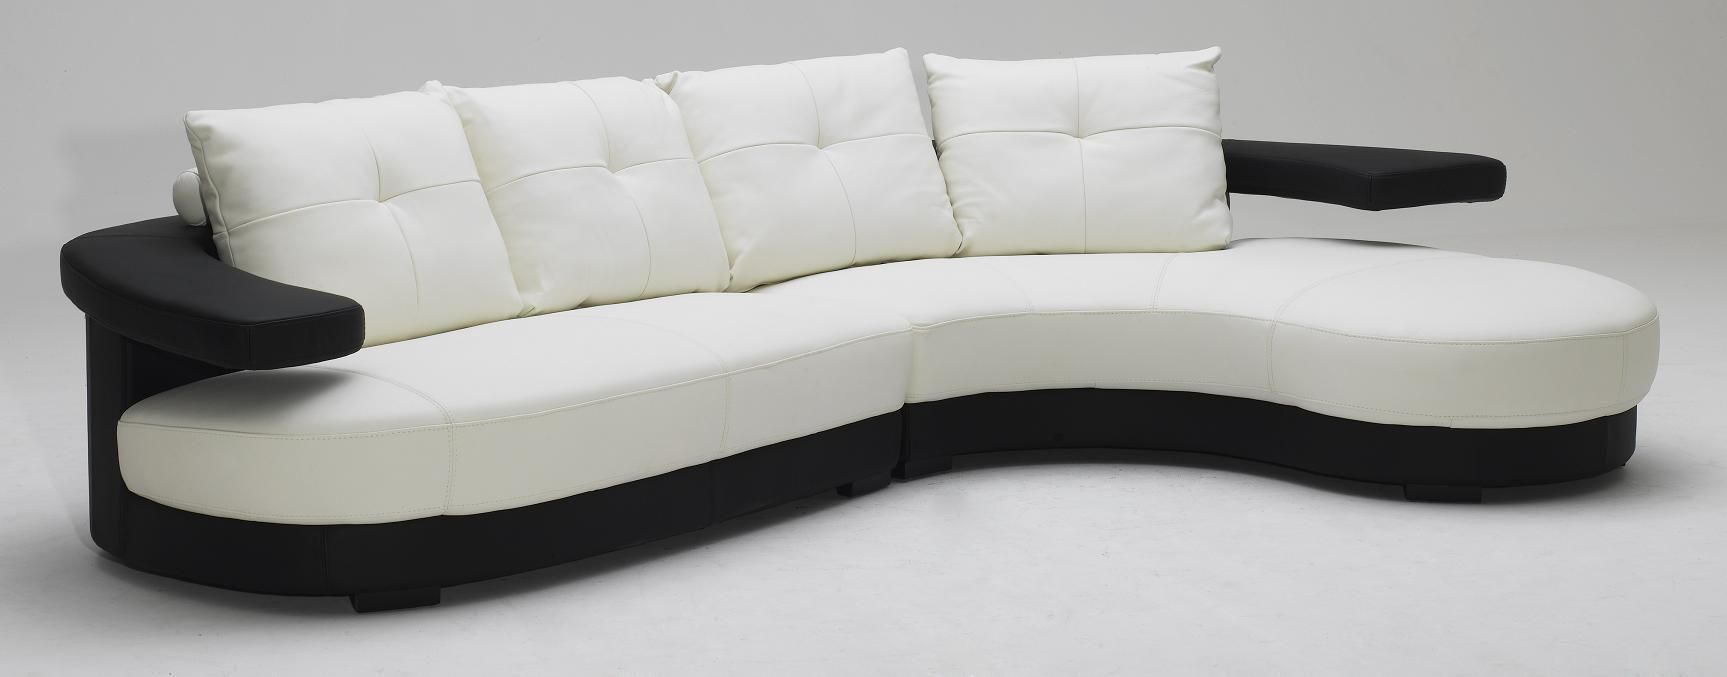 Neat Modern Sofa 2016 Photograph Newest Gallery Love This But I Live With Beasts 3 Men It Would Get Destroyed